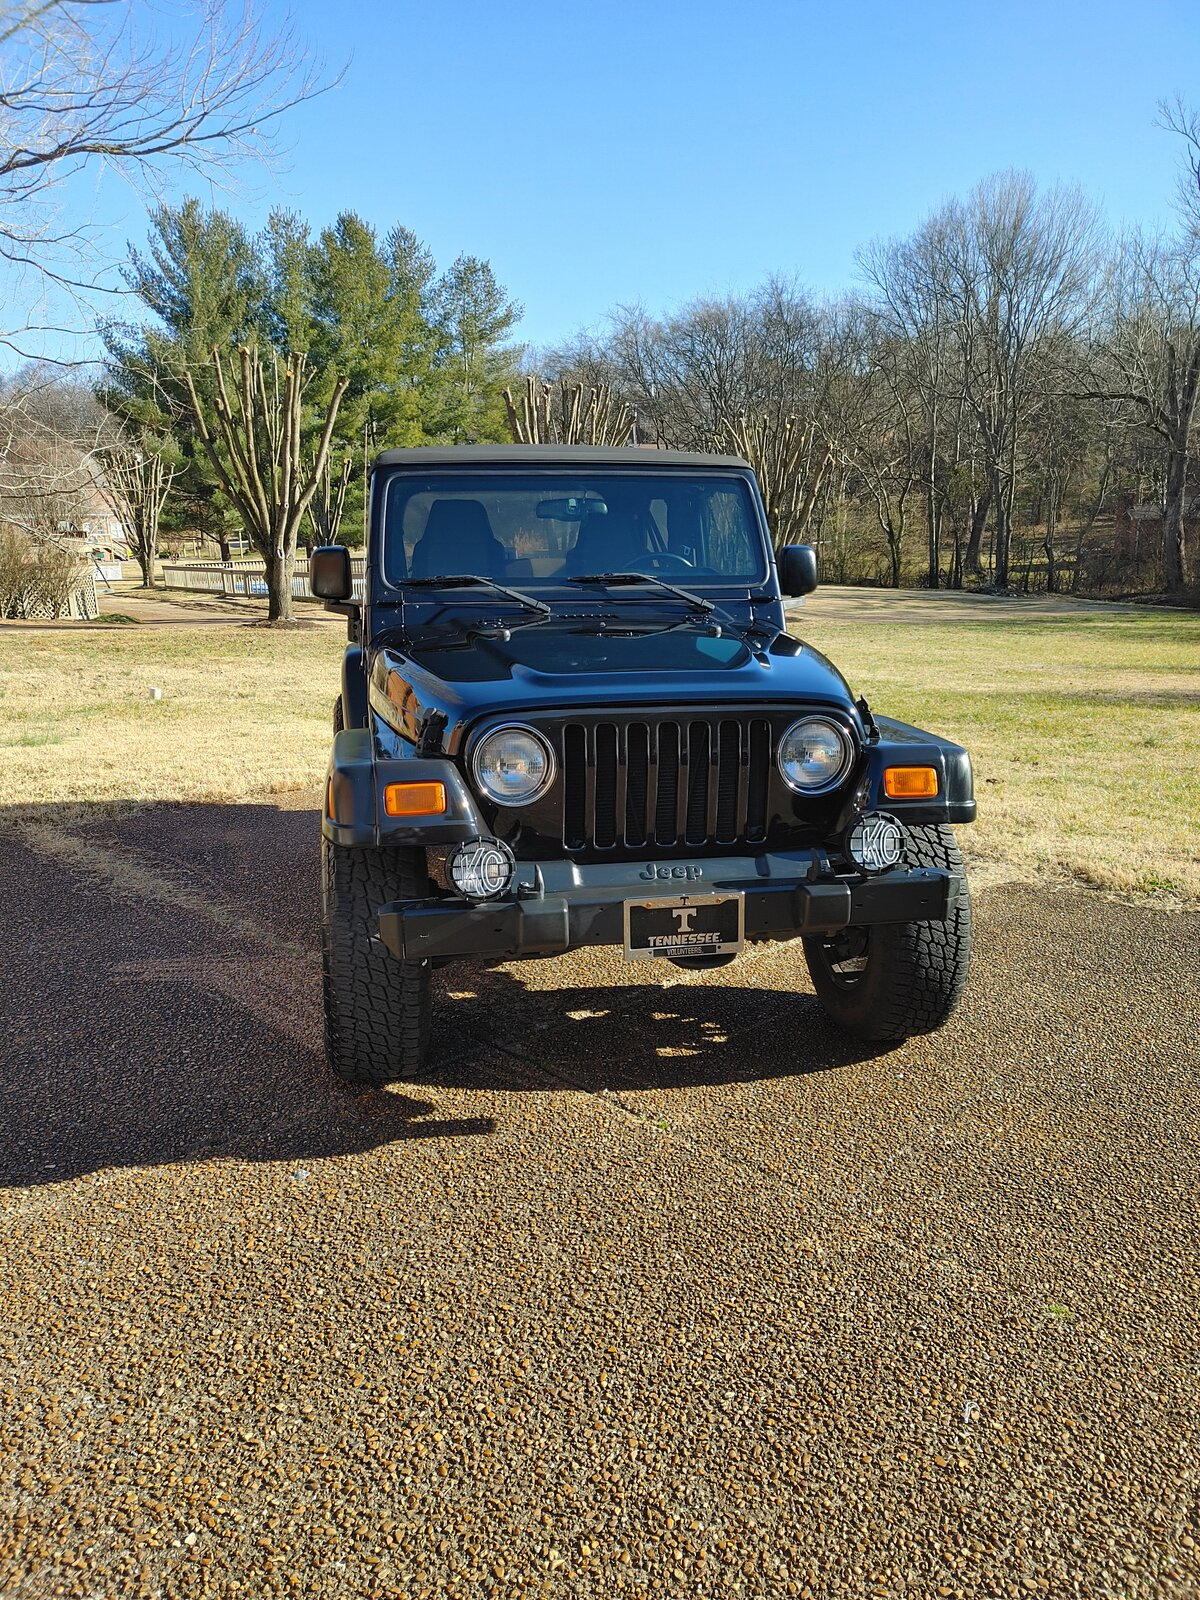 Salvage Jeep Wrangler Unlimited For Sale : salvage, wrangler, unlimited, Tennessee, Wrangler, Unlimited, Rubicon, Forum